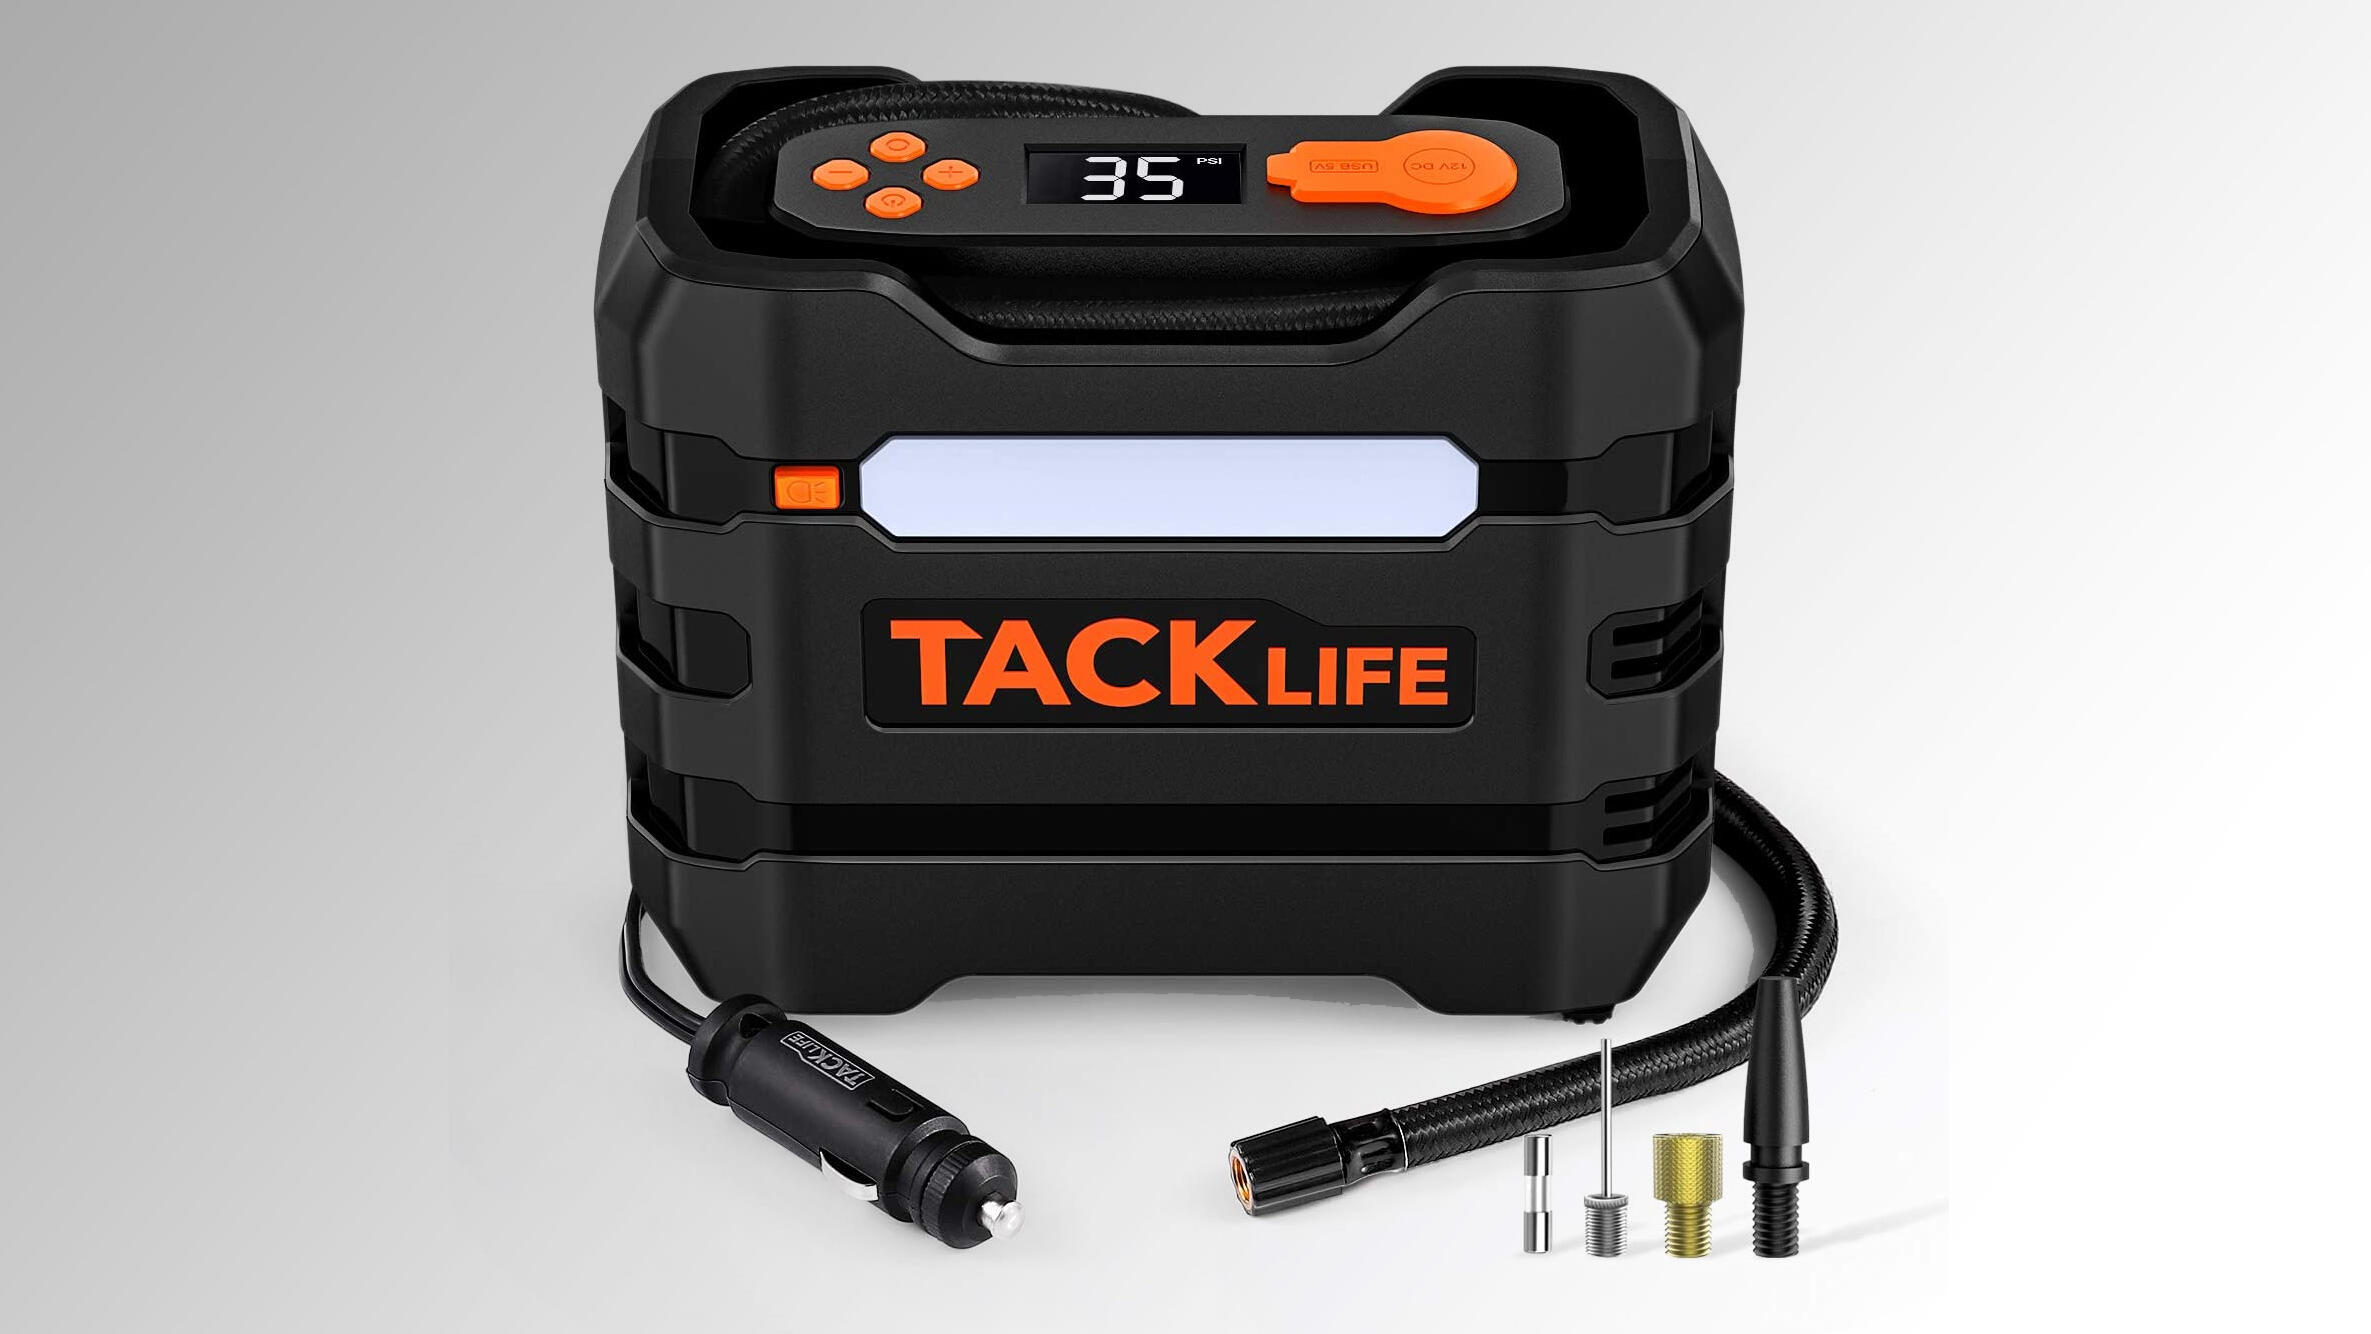 Inflate flat tires in under 5 minutes with this Tacklife air compressor for $16 - CNET